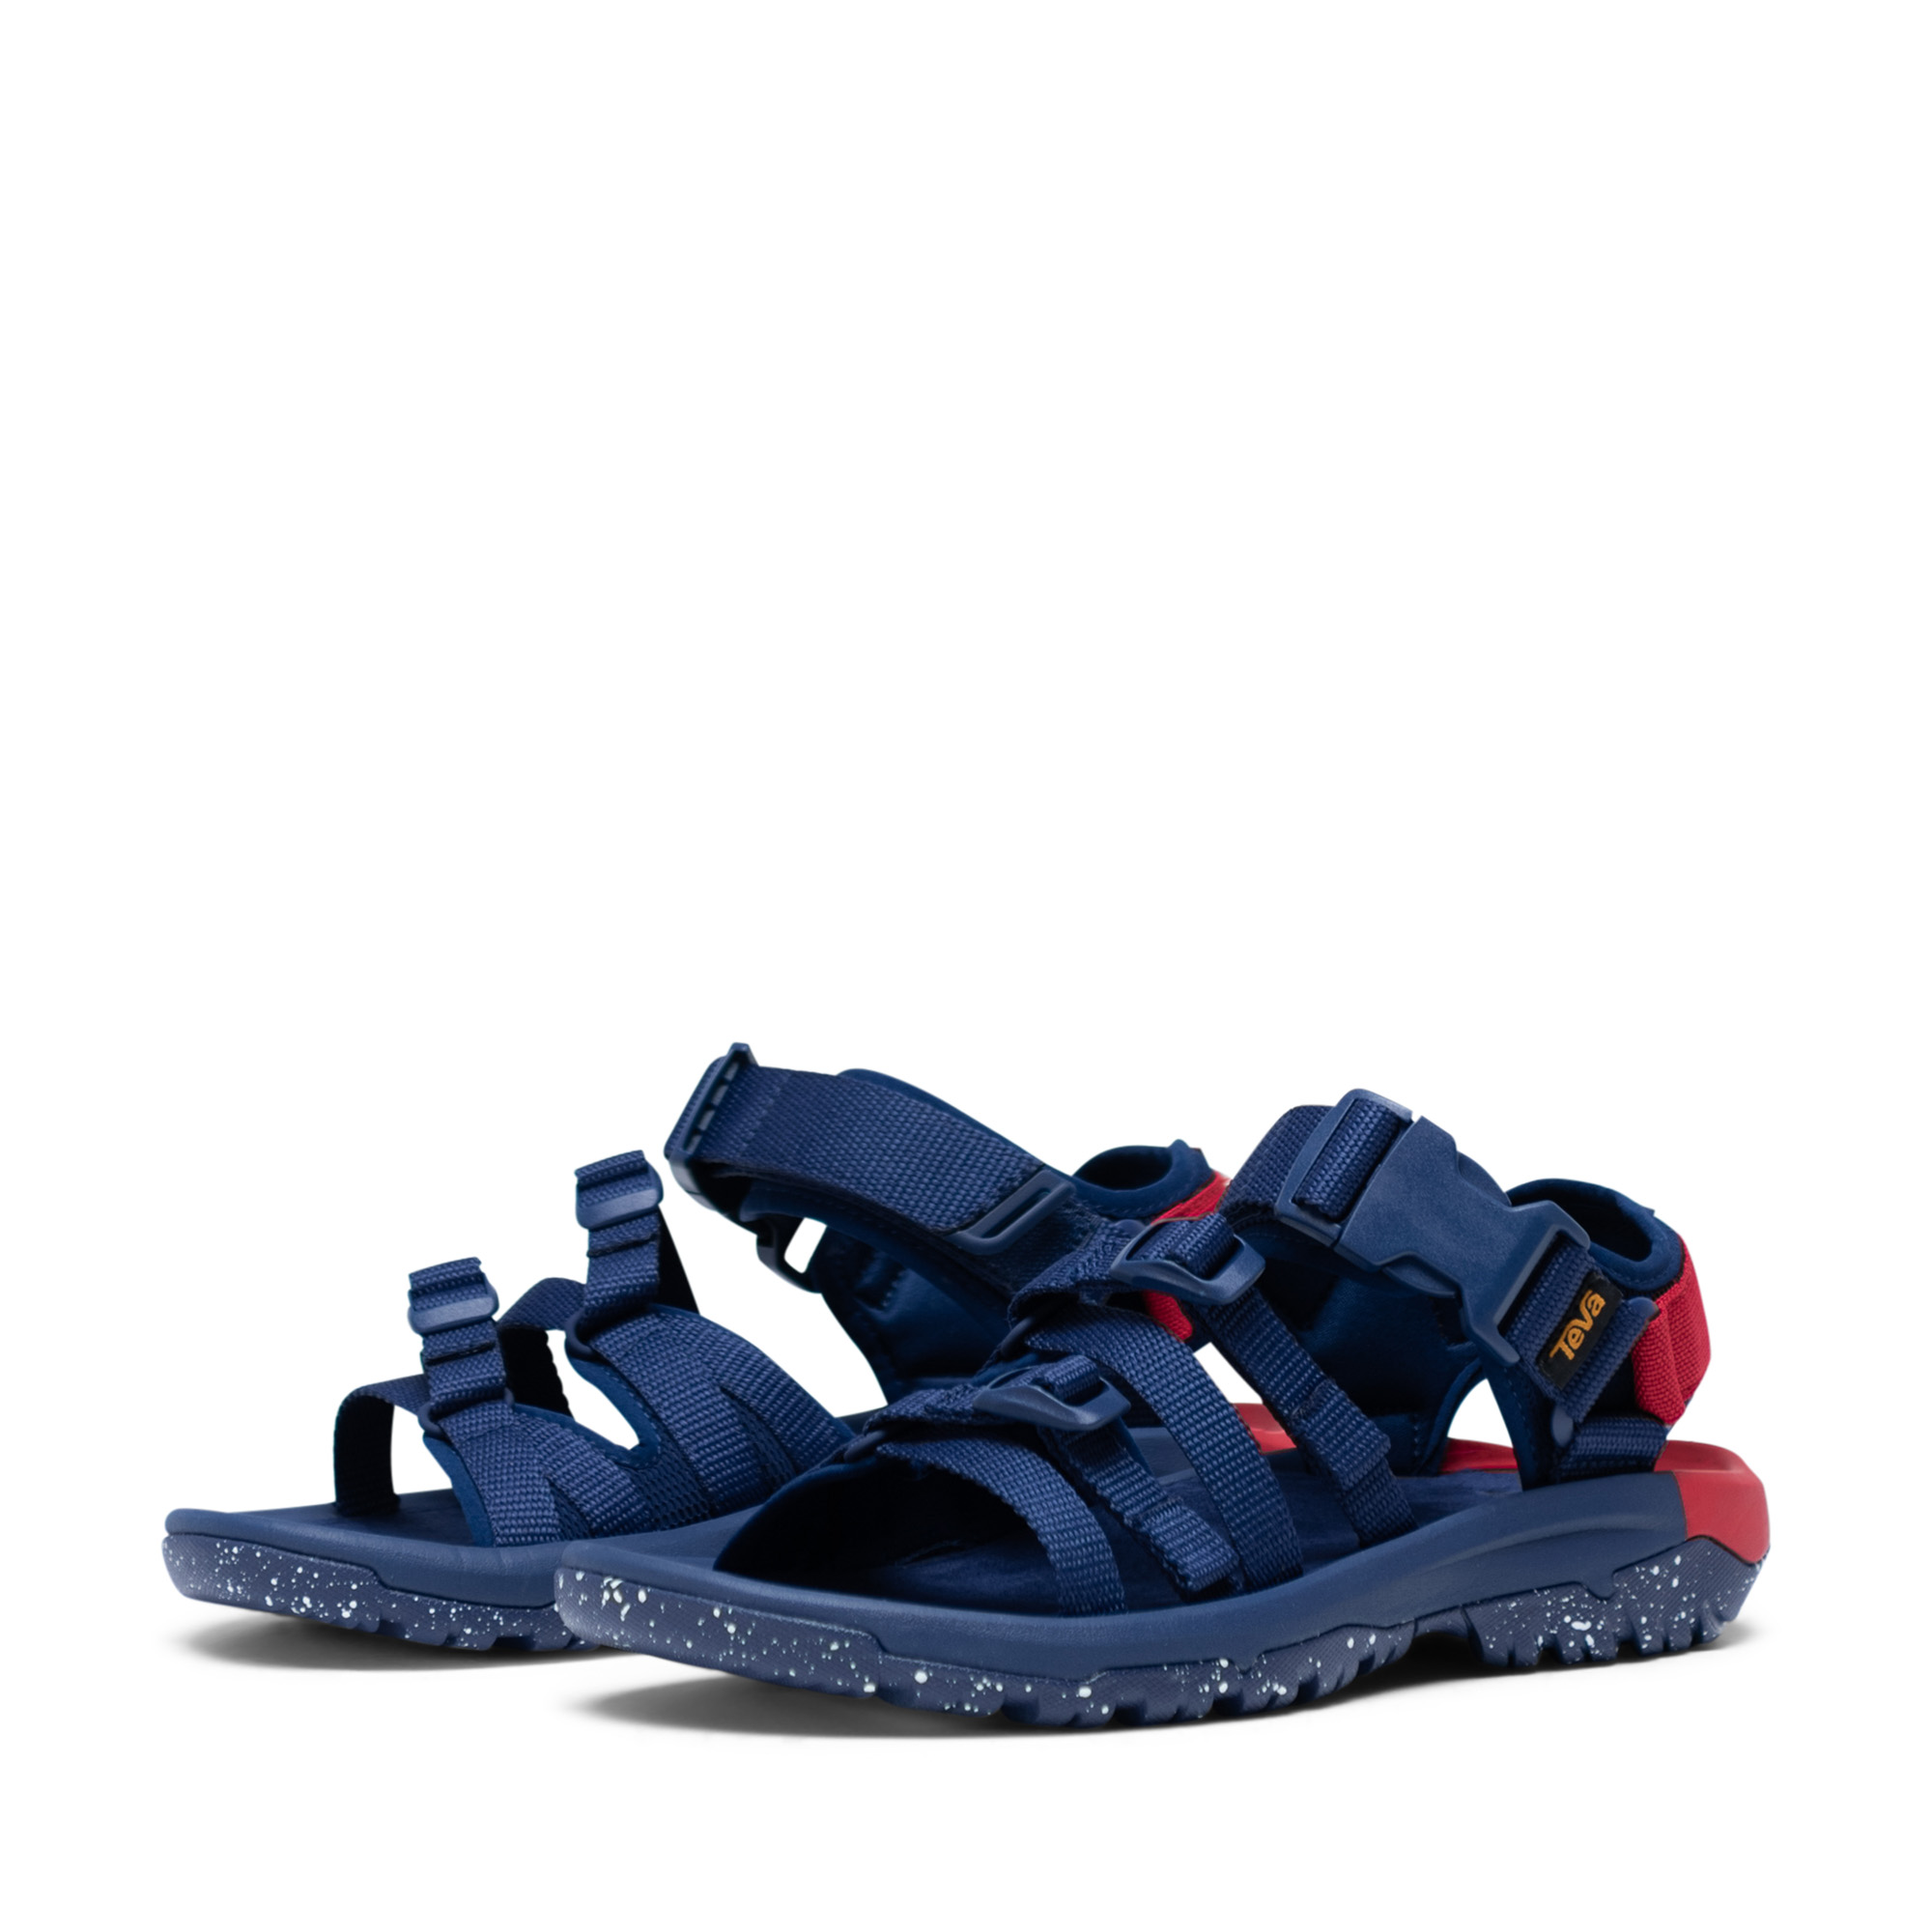 4fac8d2d6cd3 Teva Hurricane XLT2 ALP Sandal - Men s